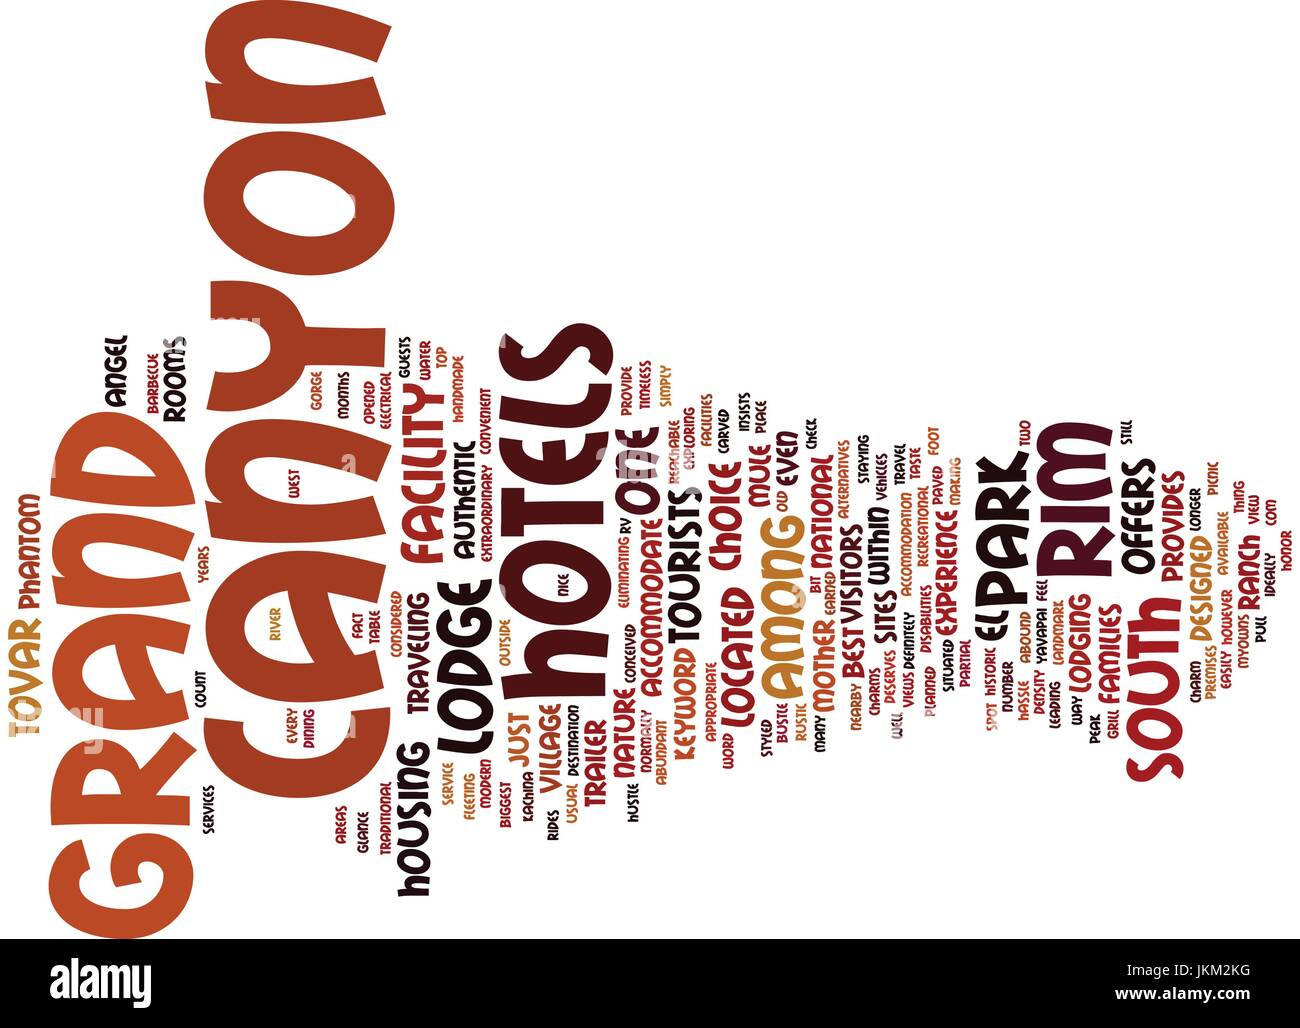 GRAND CANYON HOTELS Text Background Word Cloud Concept - Stock Vector